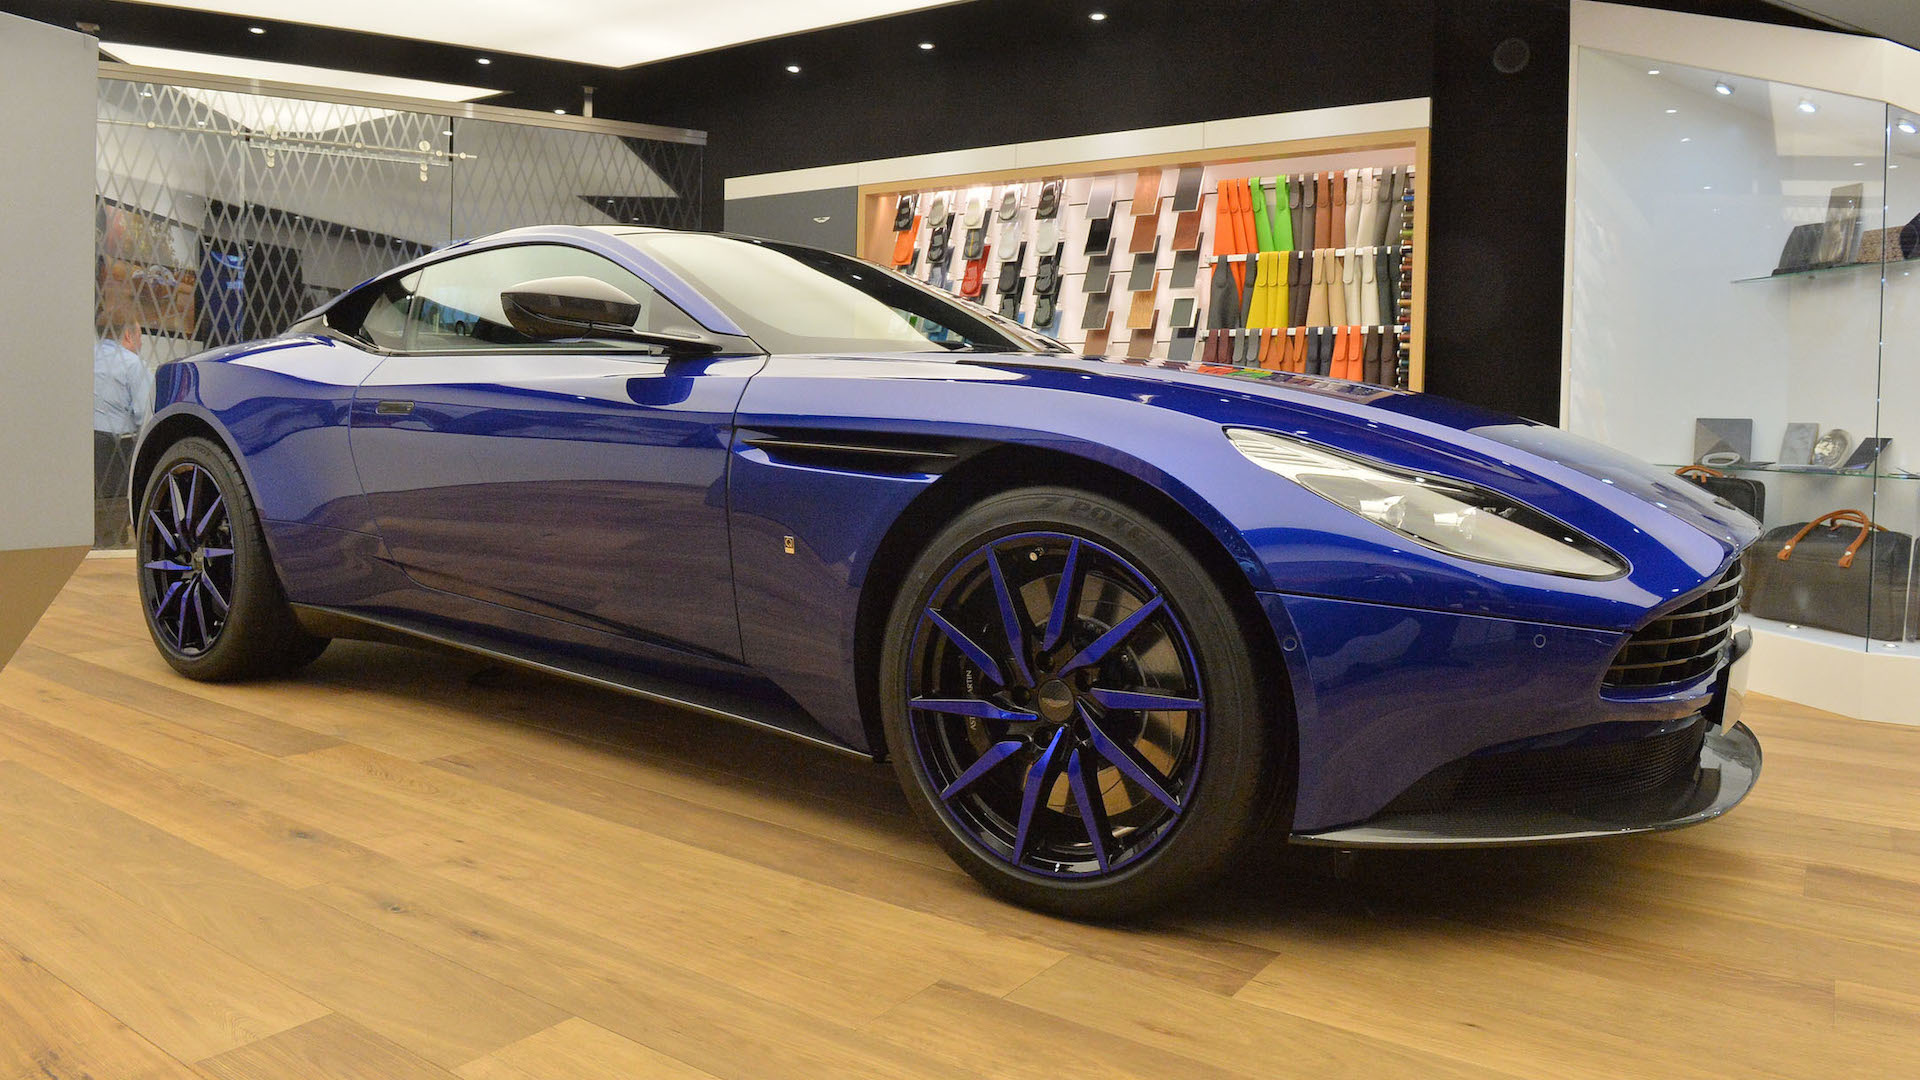 Aston martin db11 by q will leave you feeling blue in geneva reheart Gallery